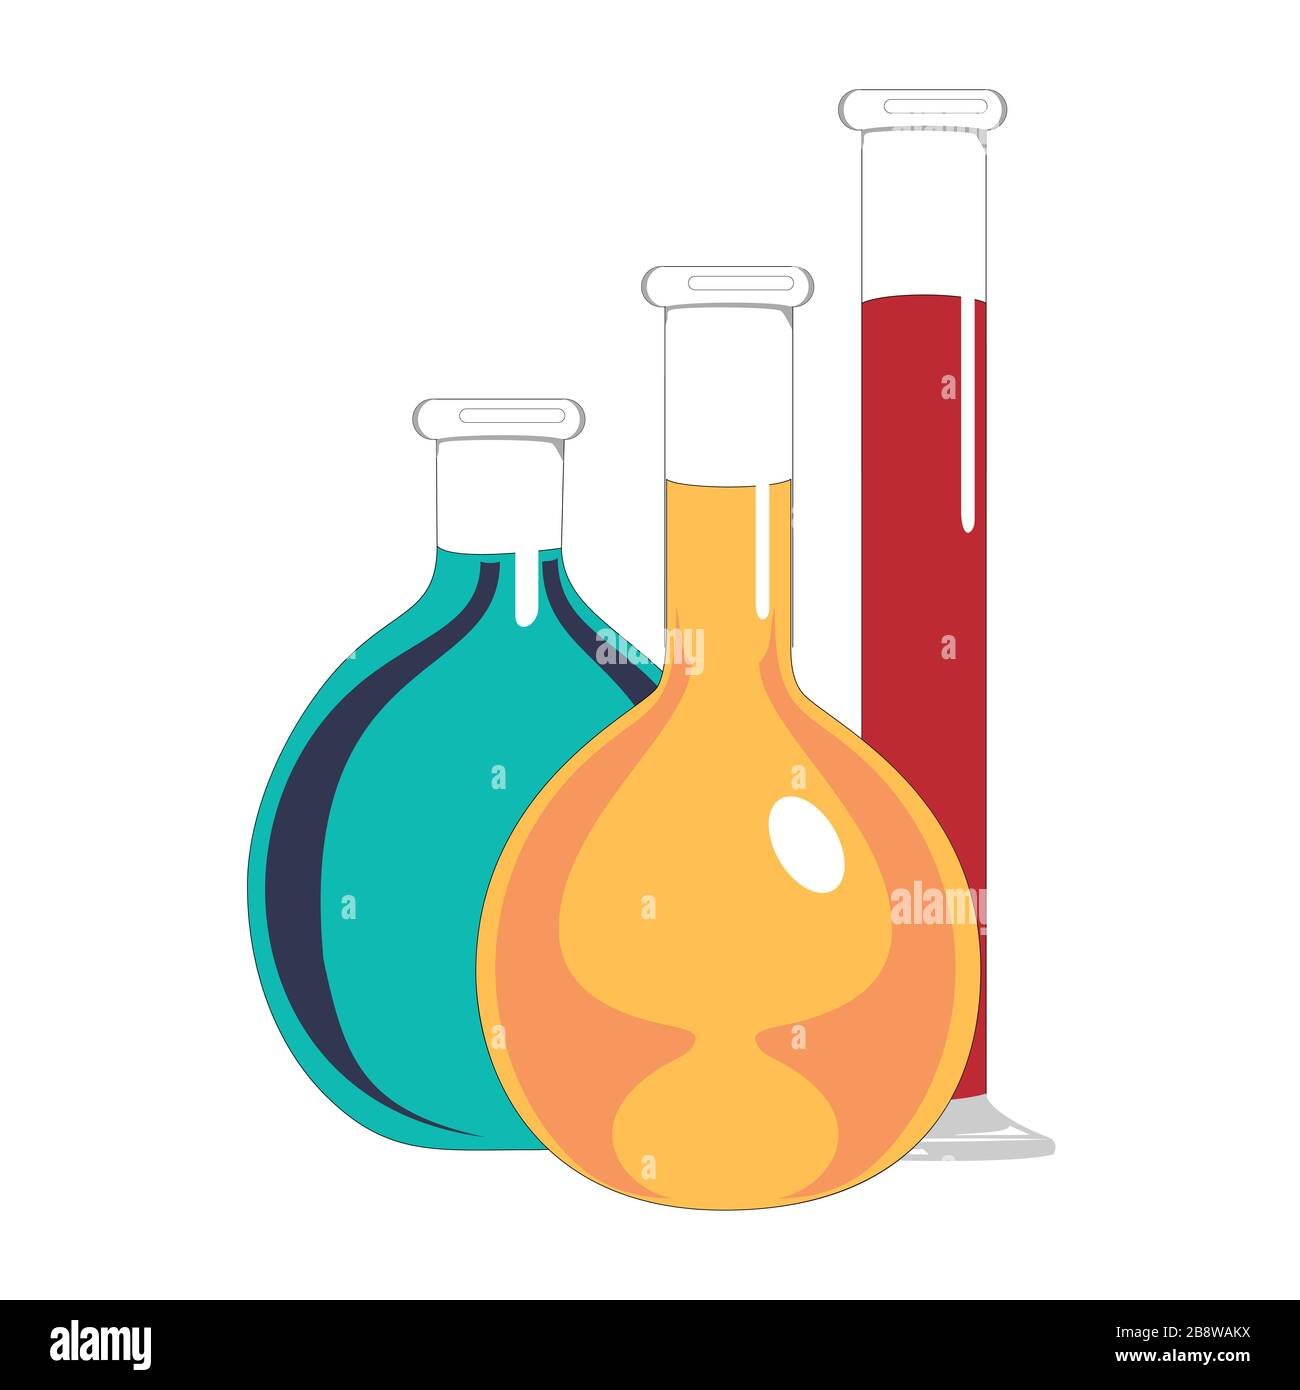 Laboratory glass flasks and test tubes with blue, yellow and red liquid. Chemical and biological experiments. Vector illustration in flat style. Stock Vector